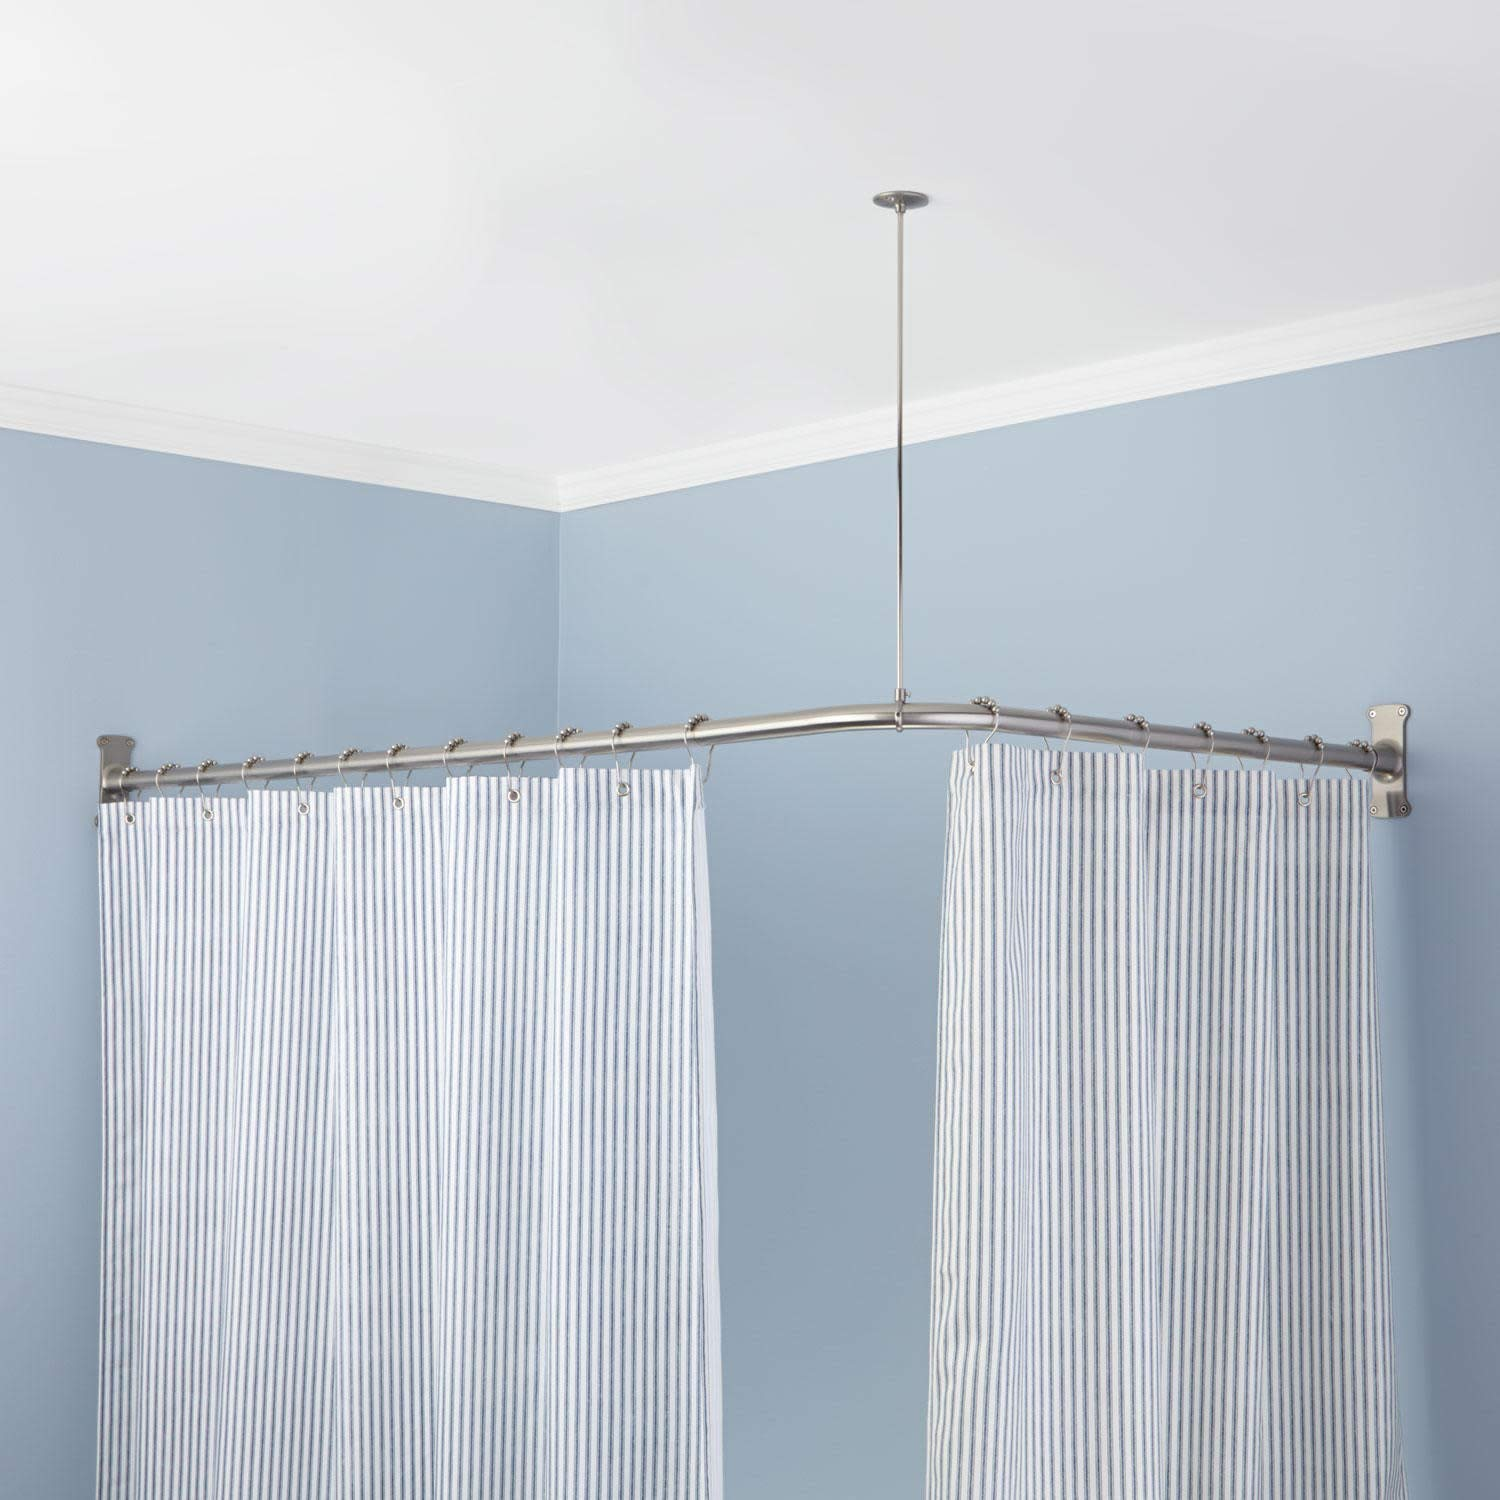 Signature Hardware 198958 60'' x 30'' Corner Shower Curtain Rod by Signature Hardware (Image #3)